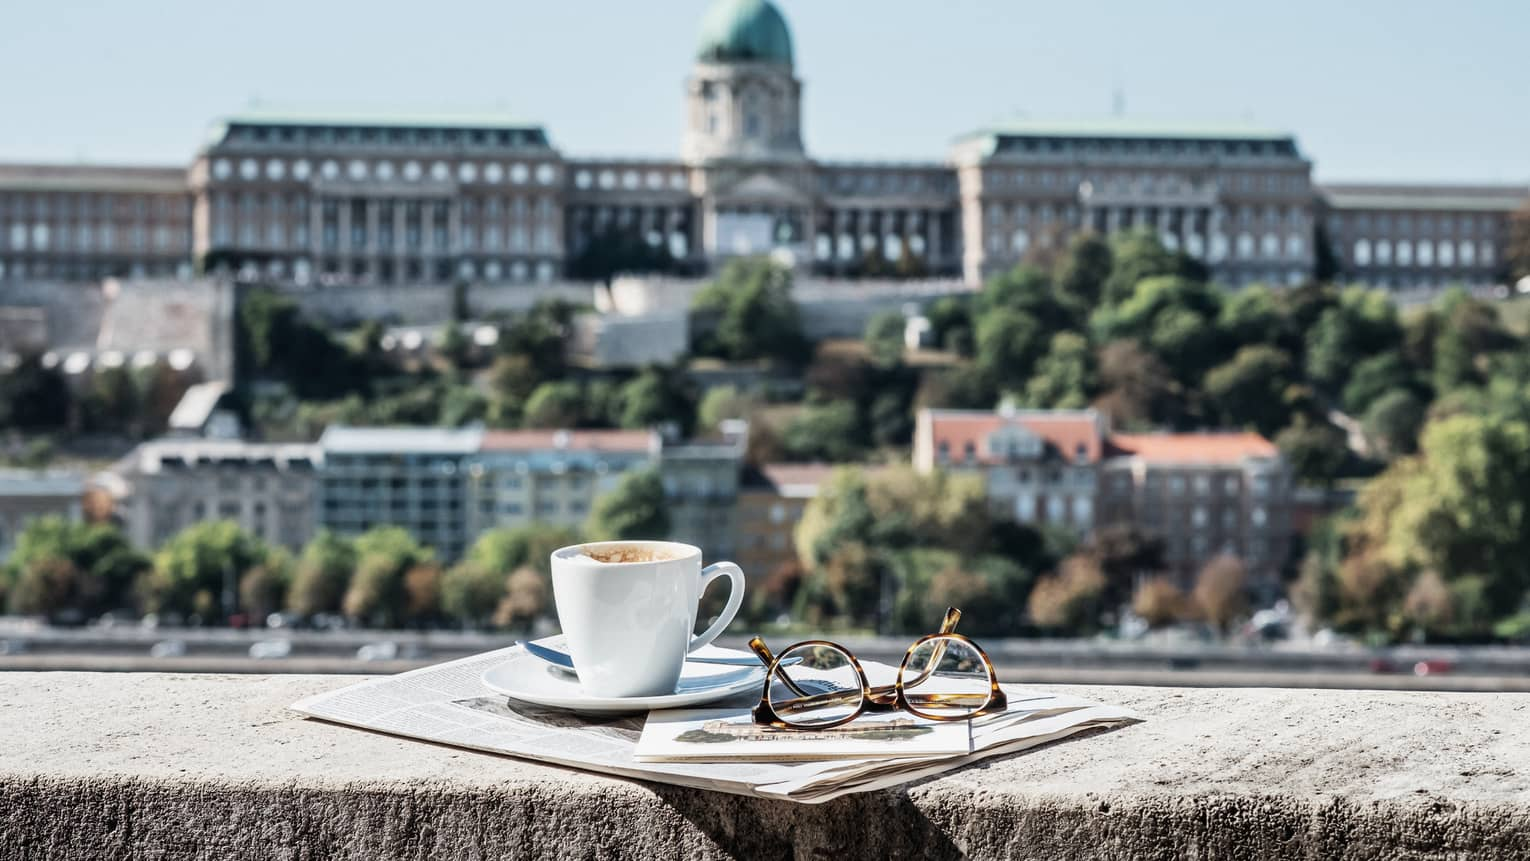 Morning view of Buda Castle from guest room terrace, cup of coffee, eyeglasses on rail